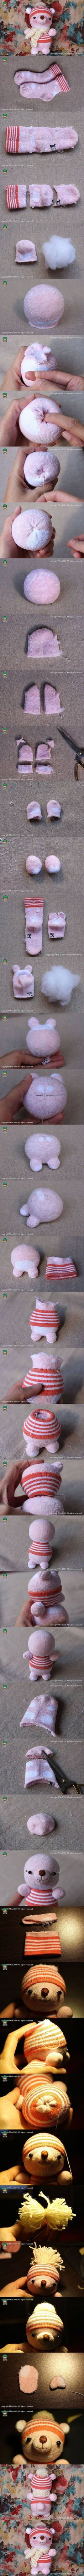 DIY Sock Doll Winnies DIY Projects